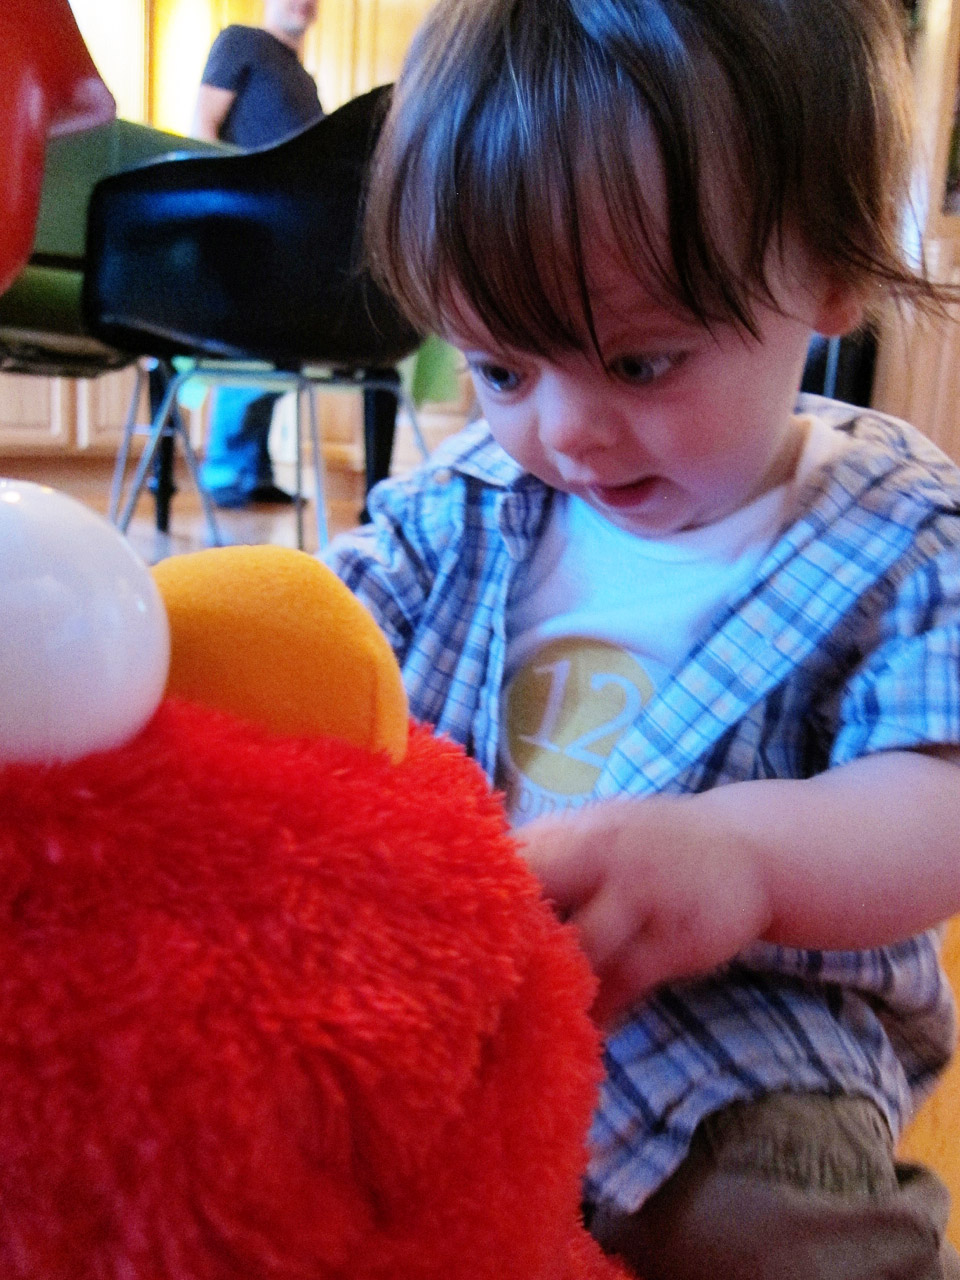 Boo Boo and Elmo